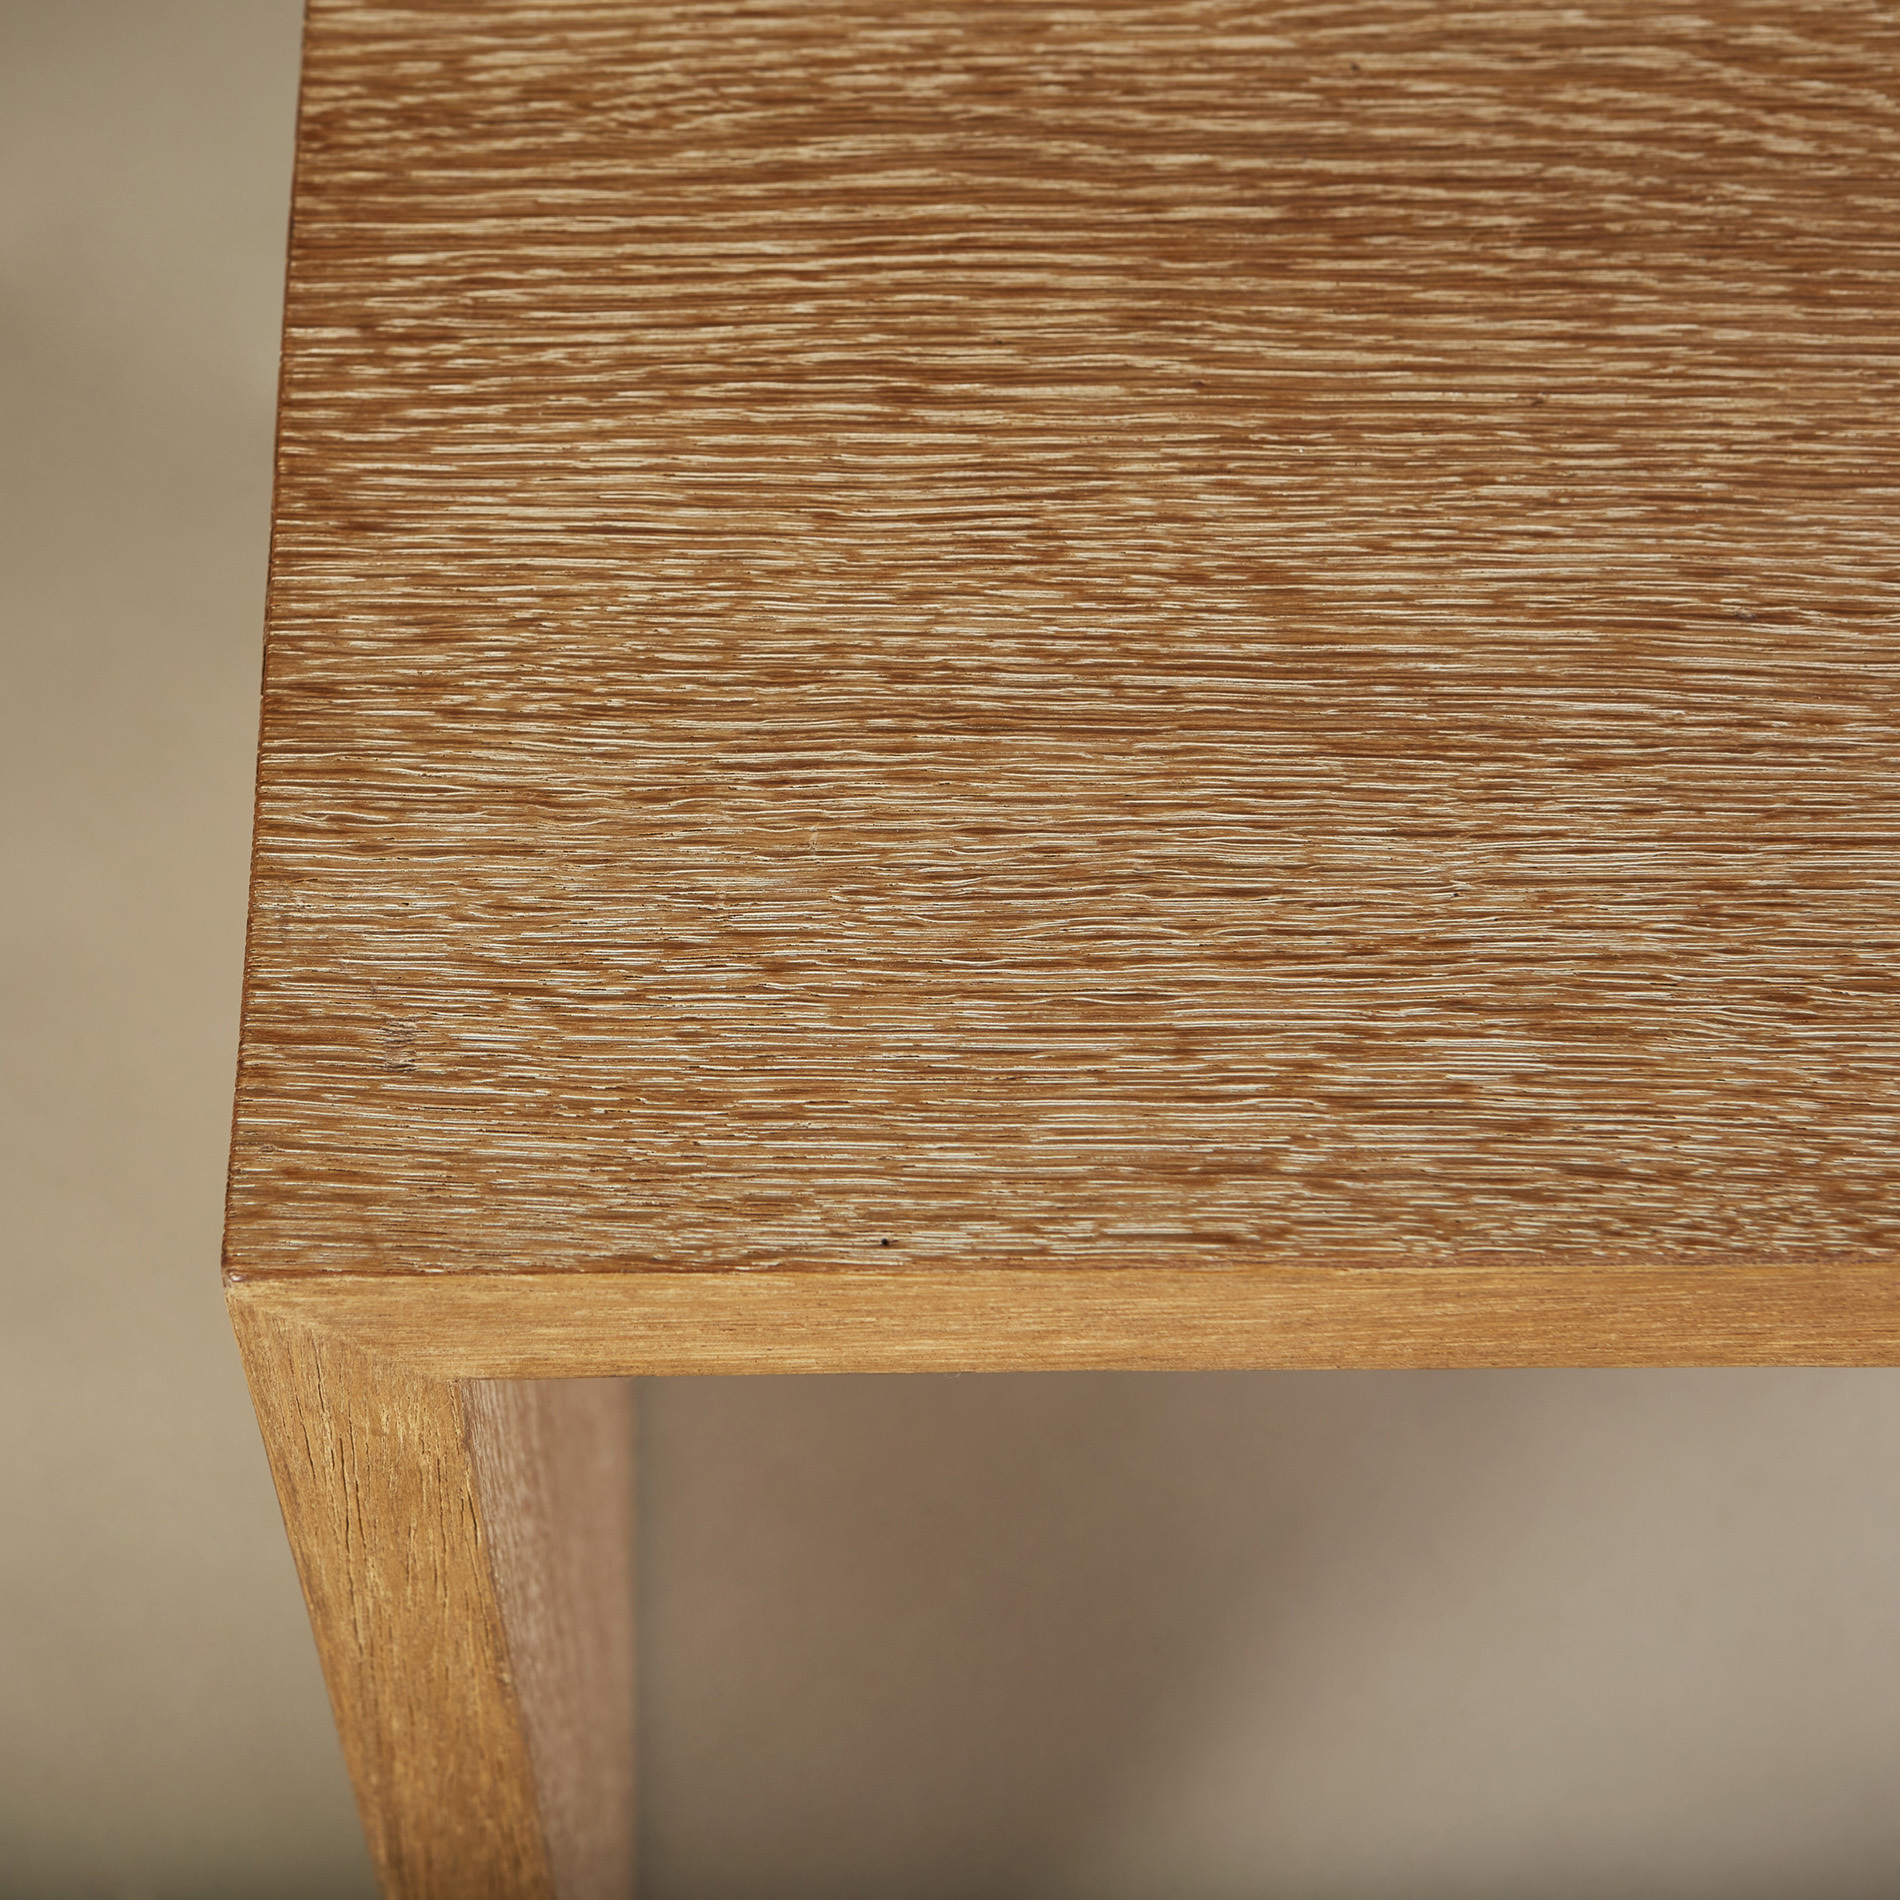 The image for Jean Michel Frank Benches 0115 V1